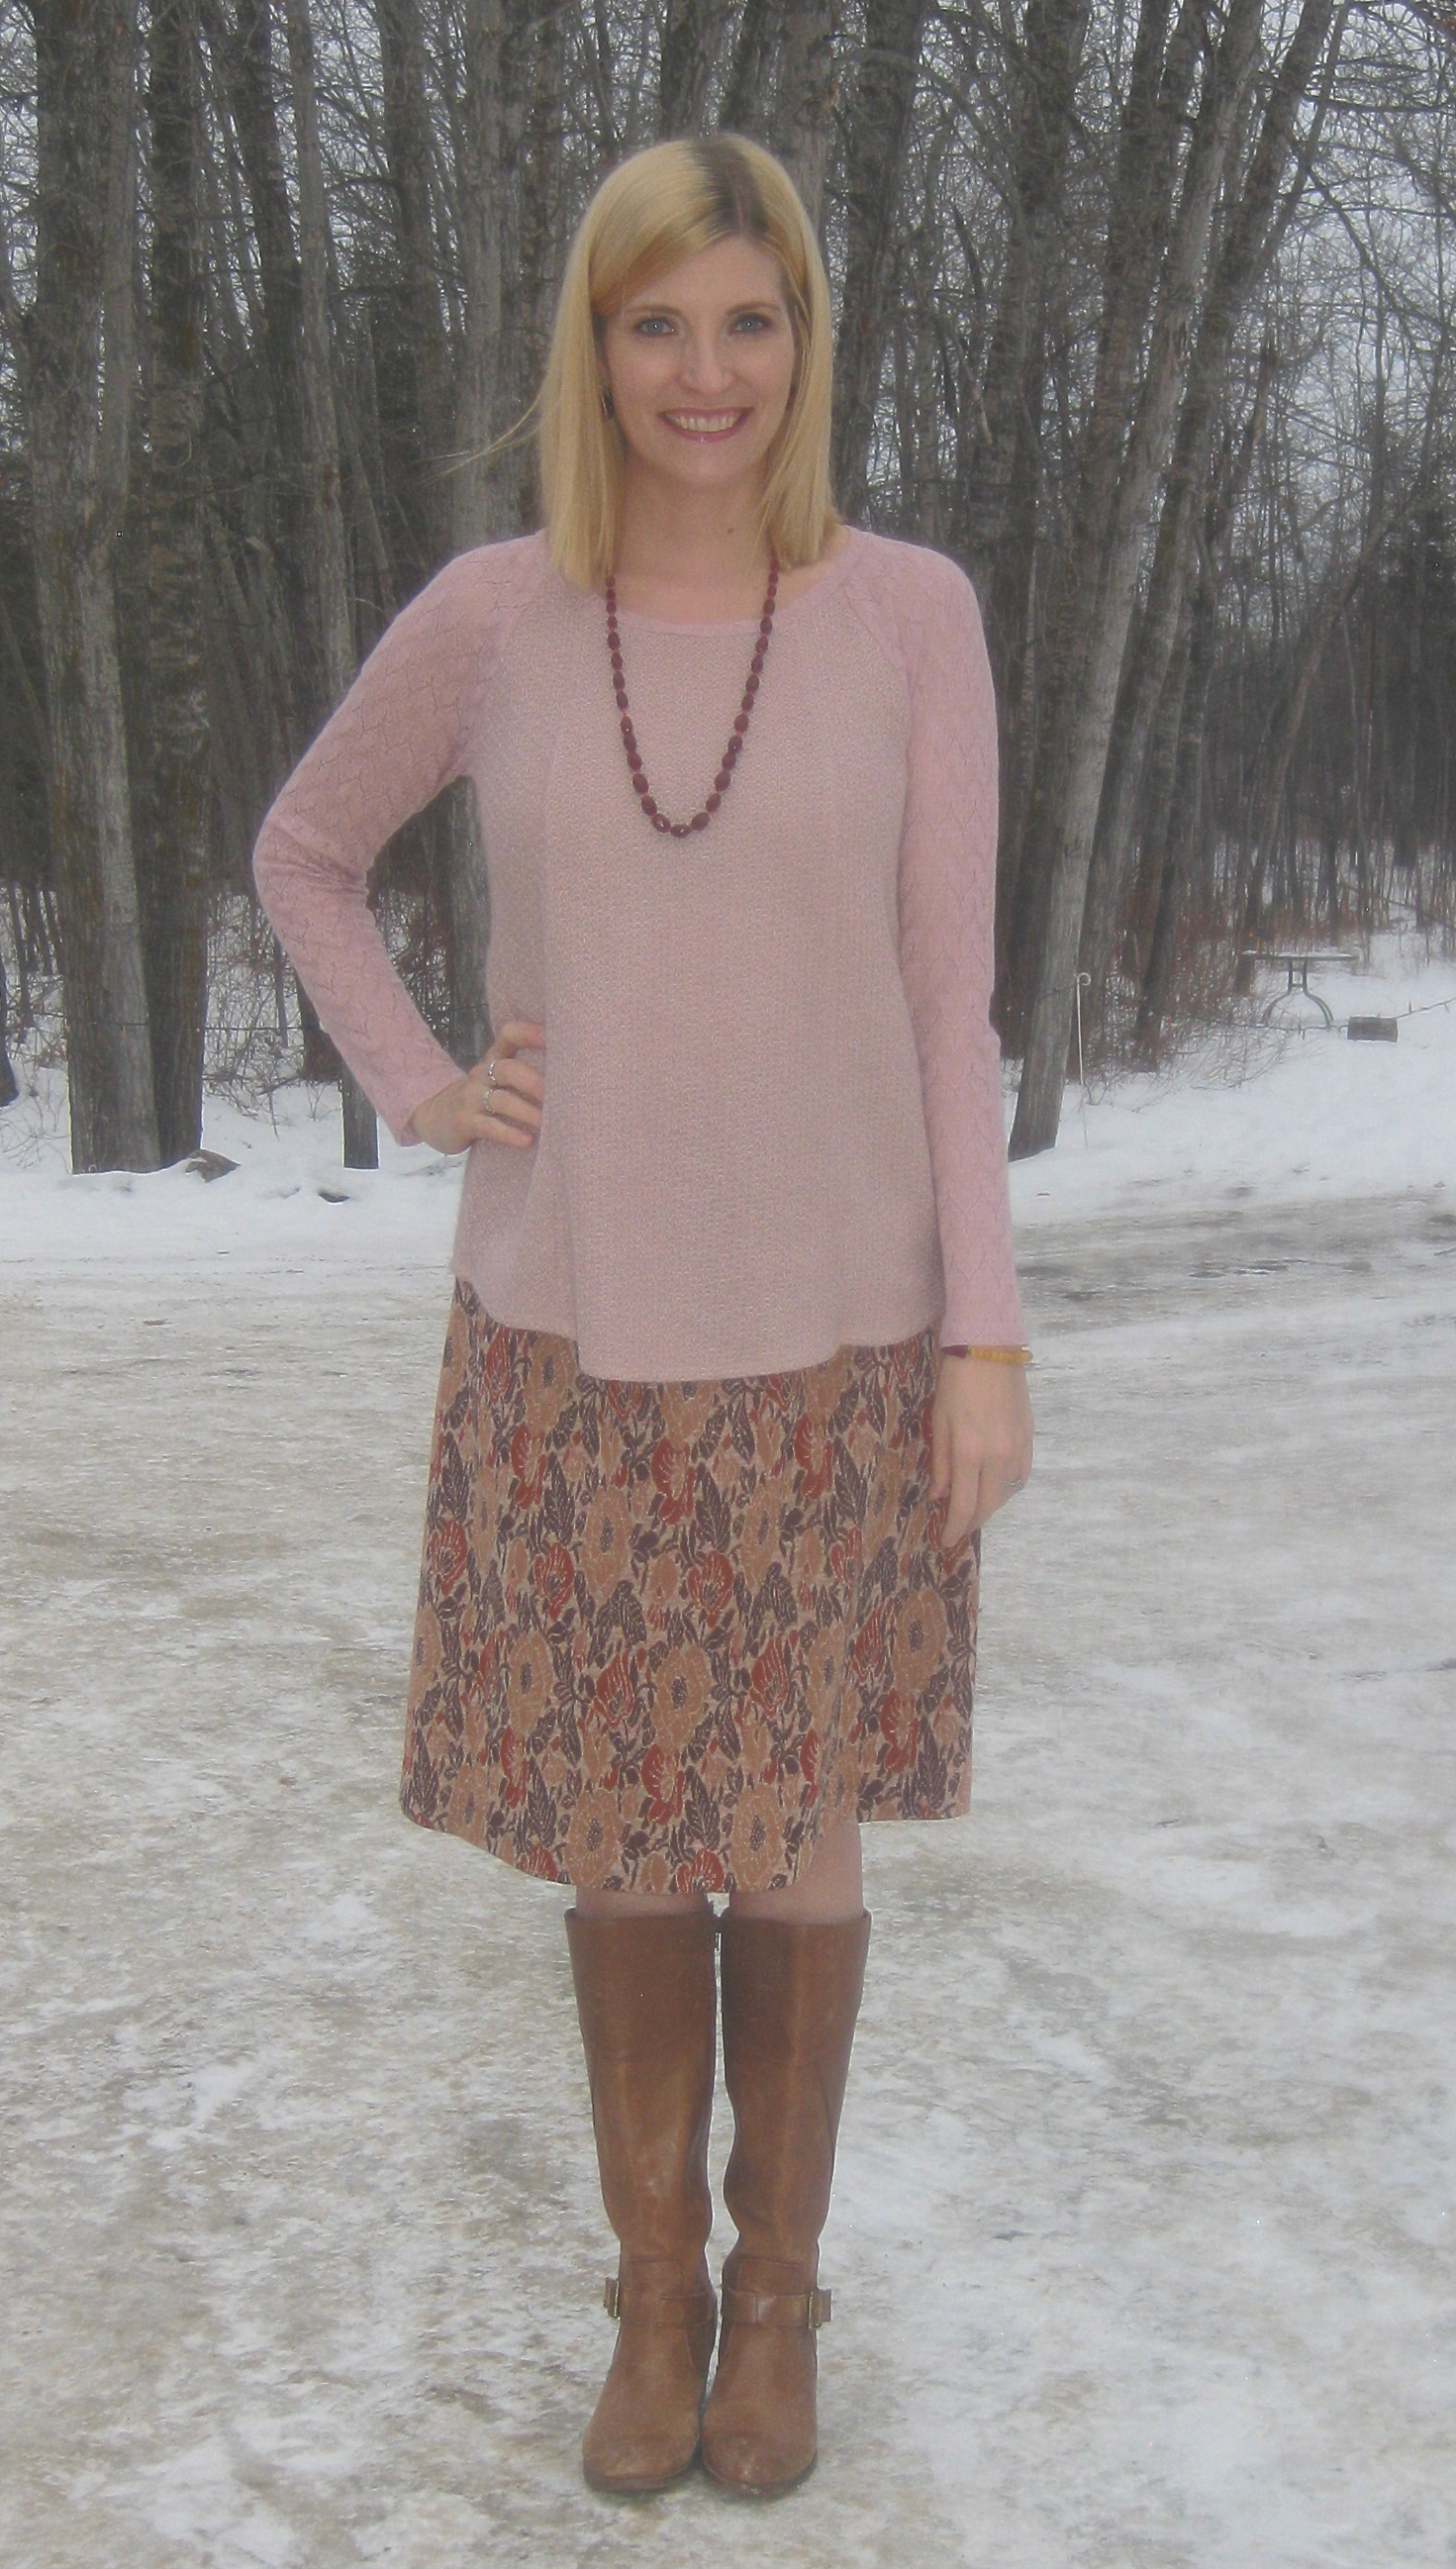 Vintage skirt $5, Miz Mooz boots $7.50 plus accessories from my collection.